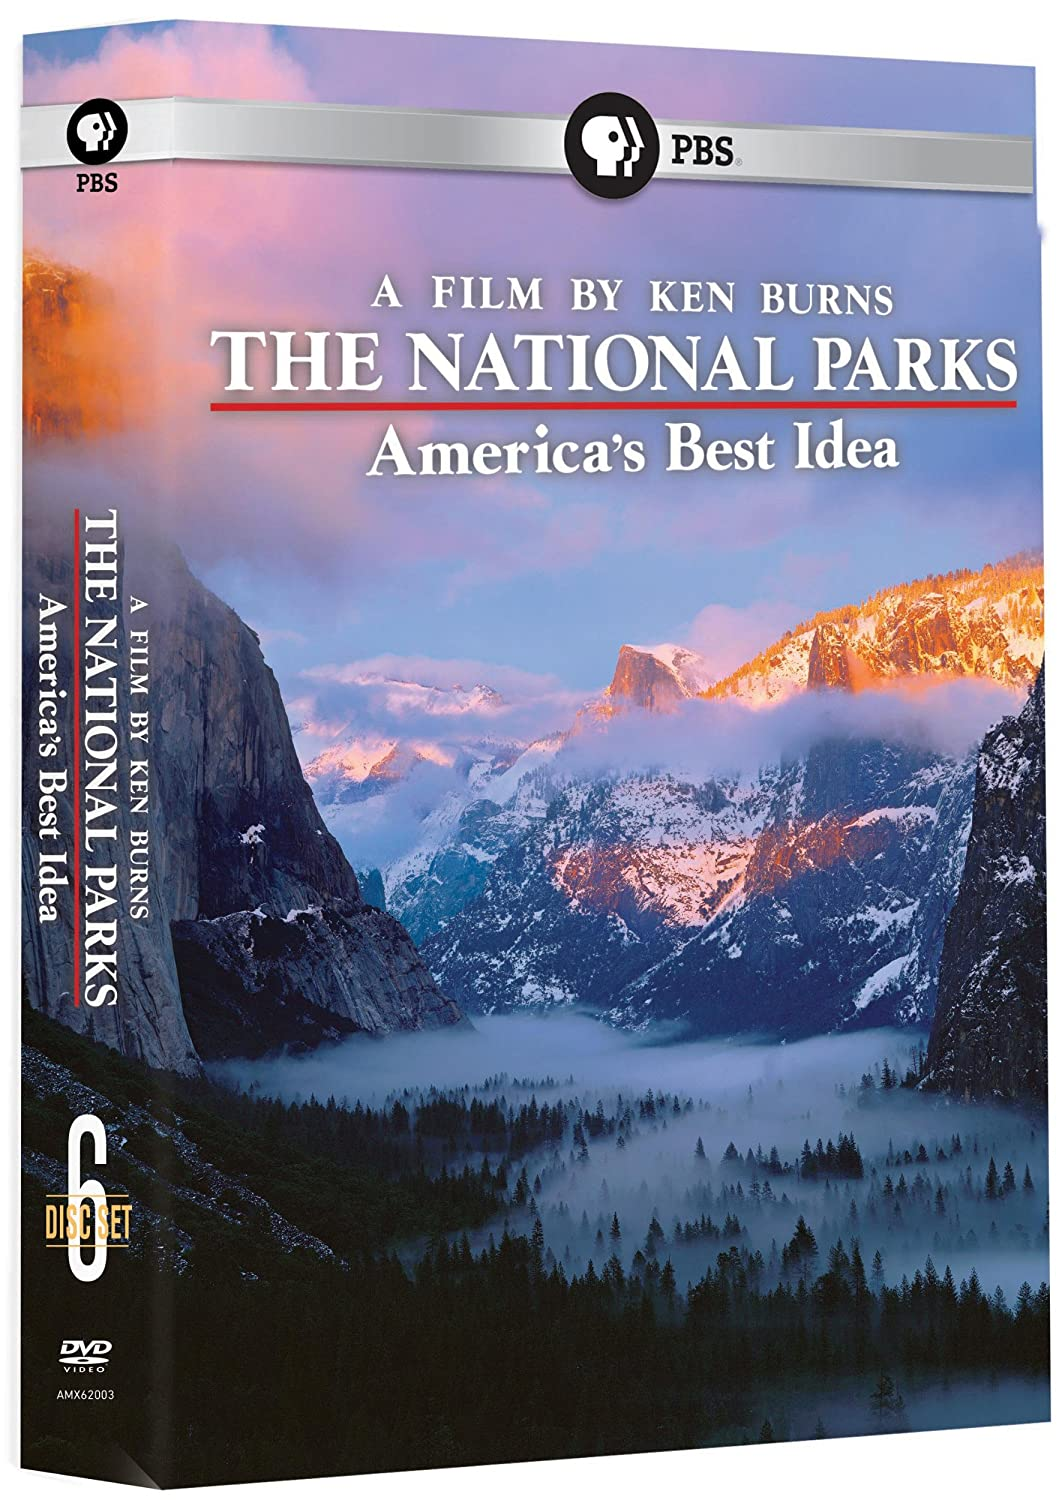 The National Parks: America's Best Idea Book